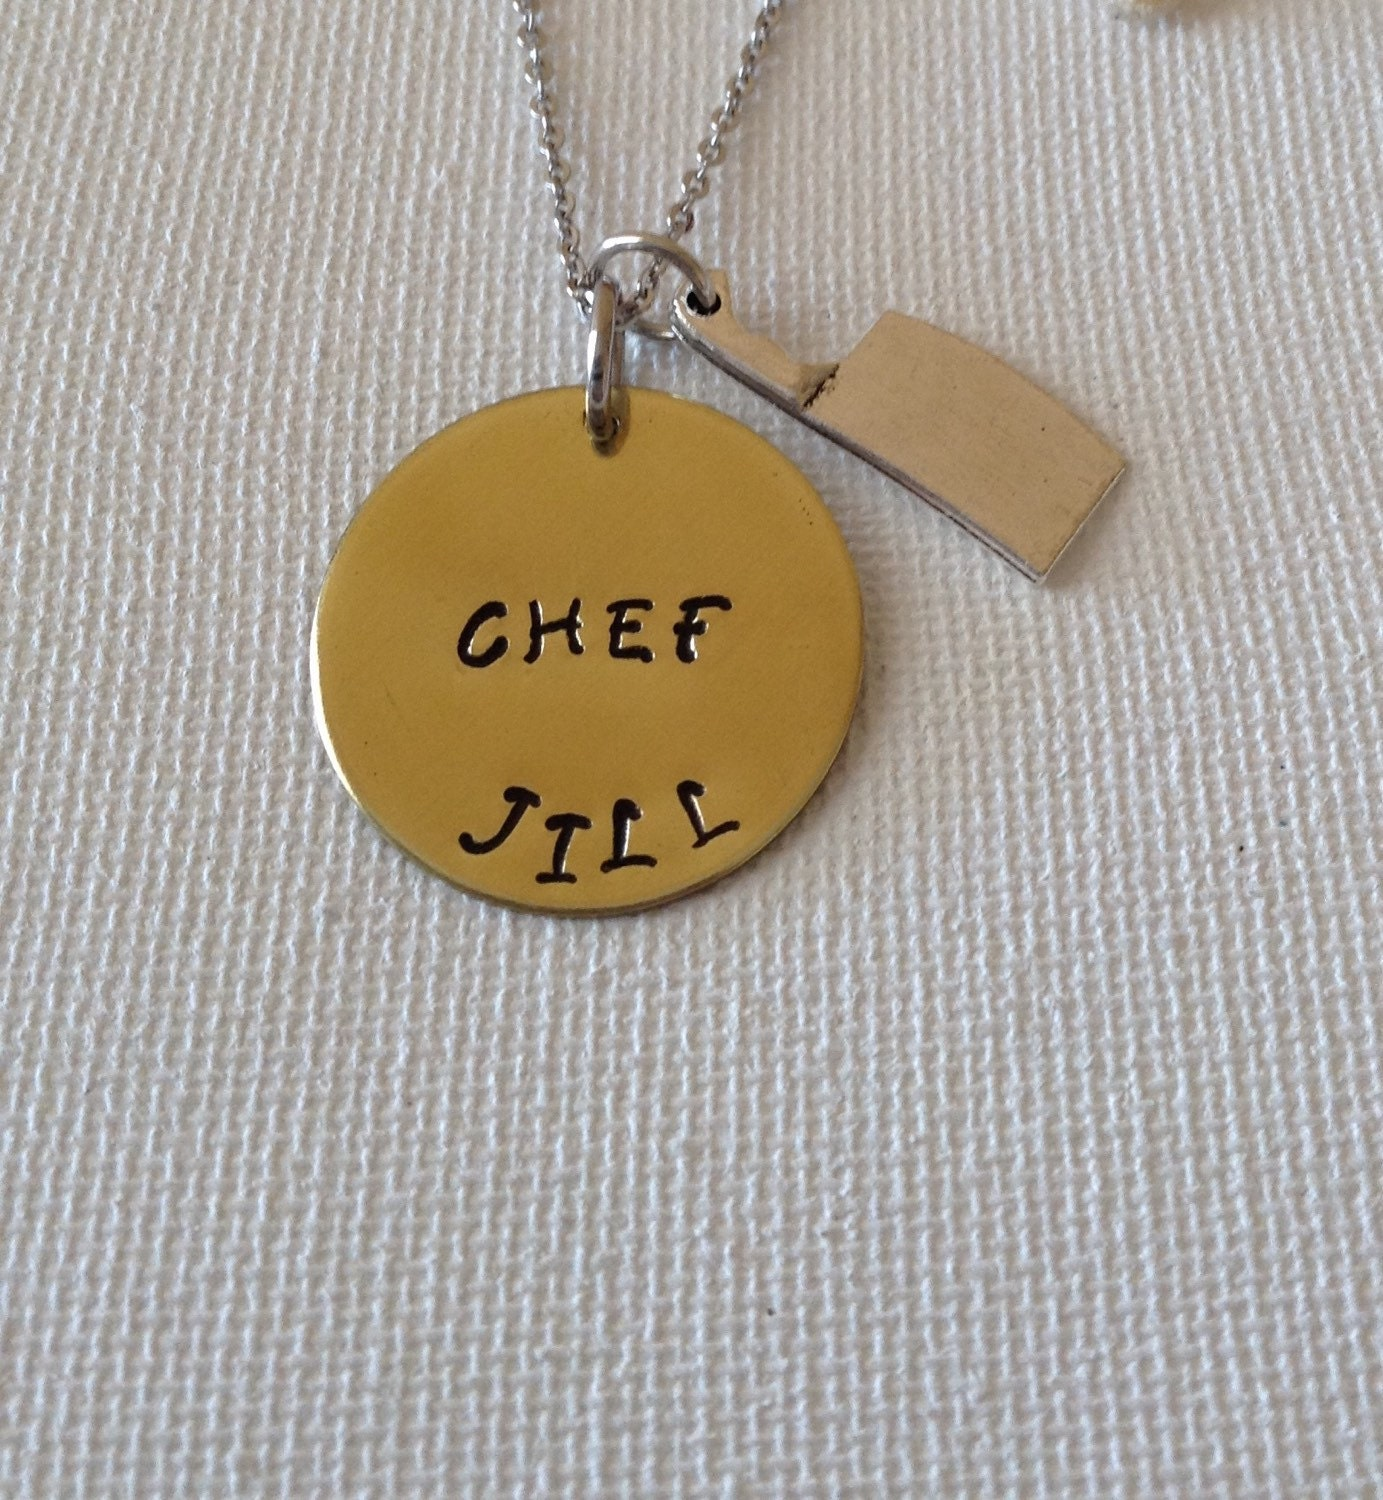 Chefs Necklace Christmas Presents Gifts For Her Gifts For